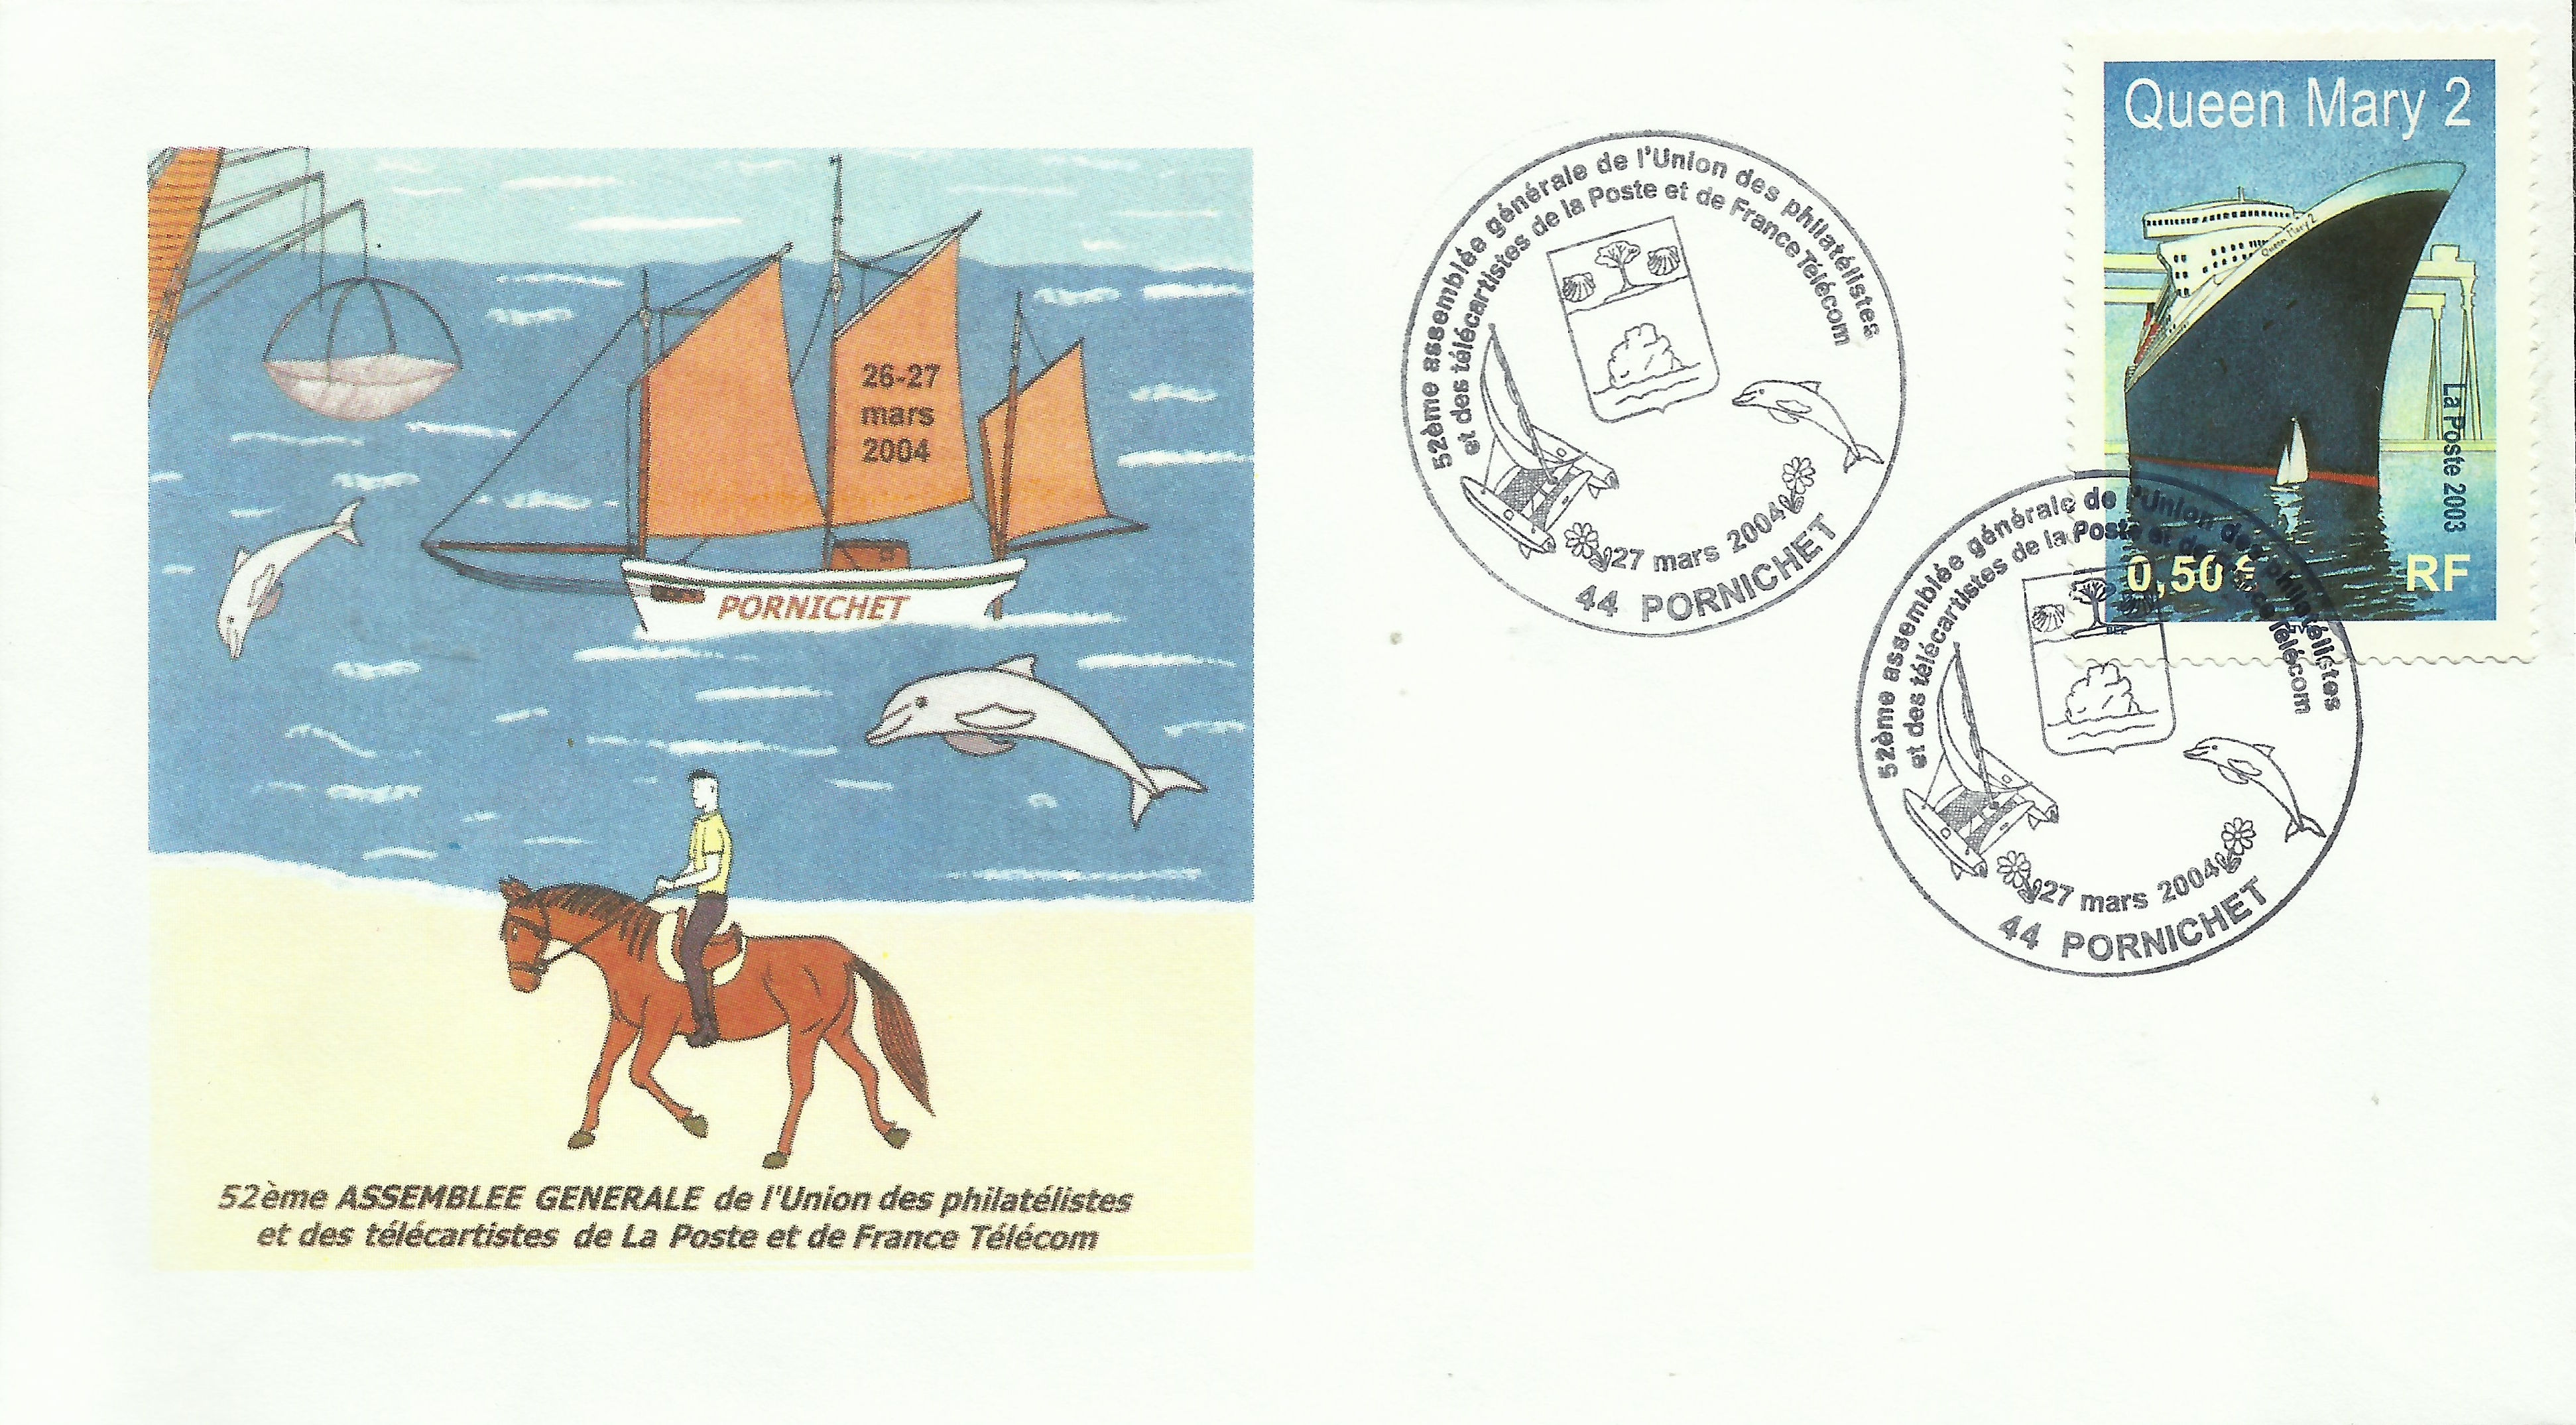 Cover bearing France #2988 (2003), postmarked at a philatelic society meeting in Pornichet on March 27, 2004.